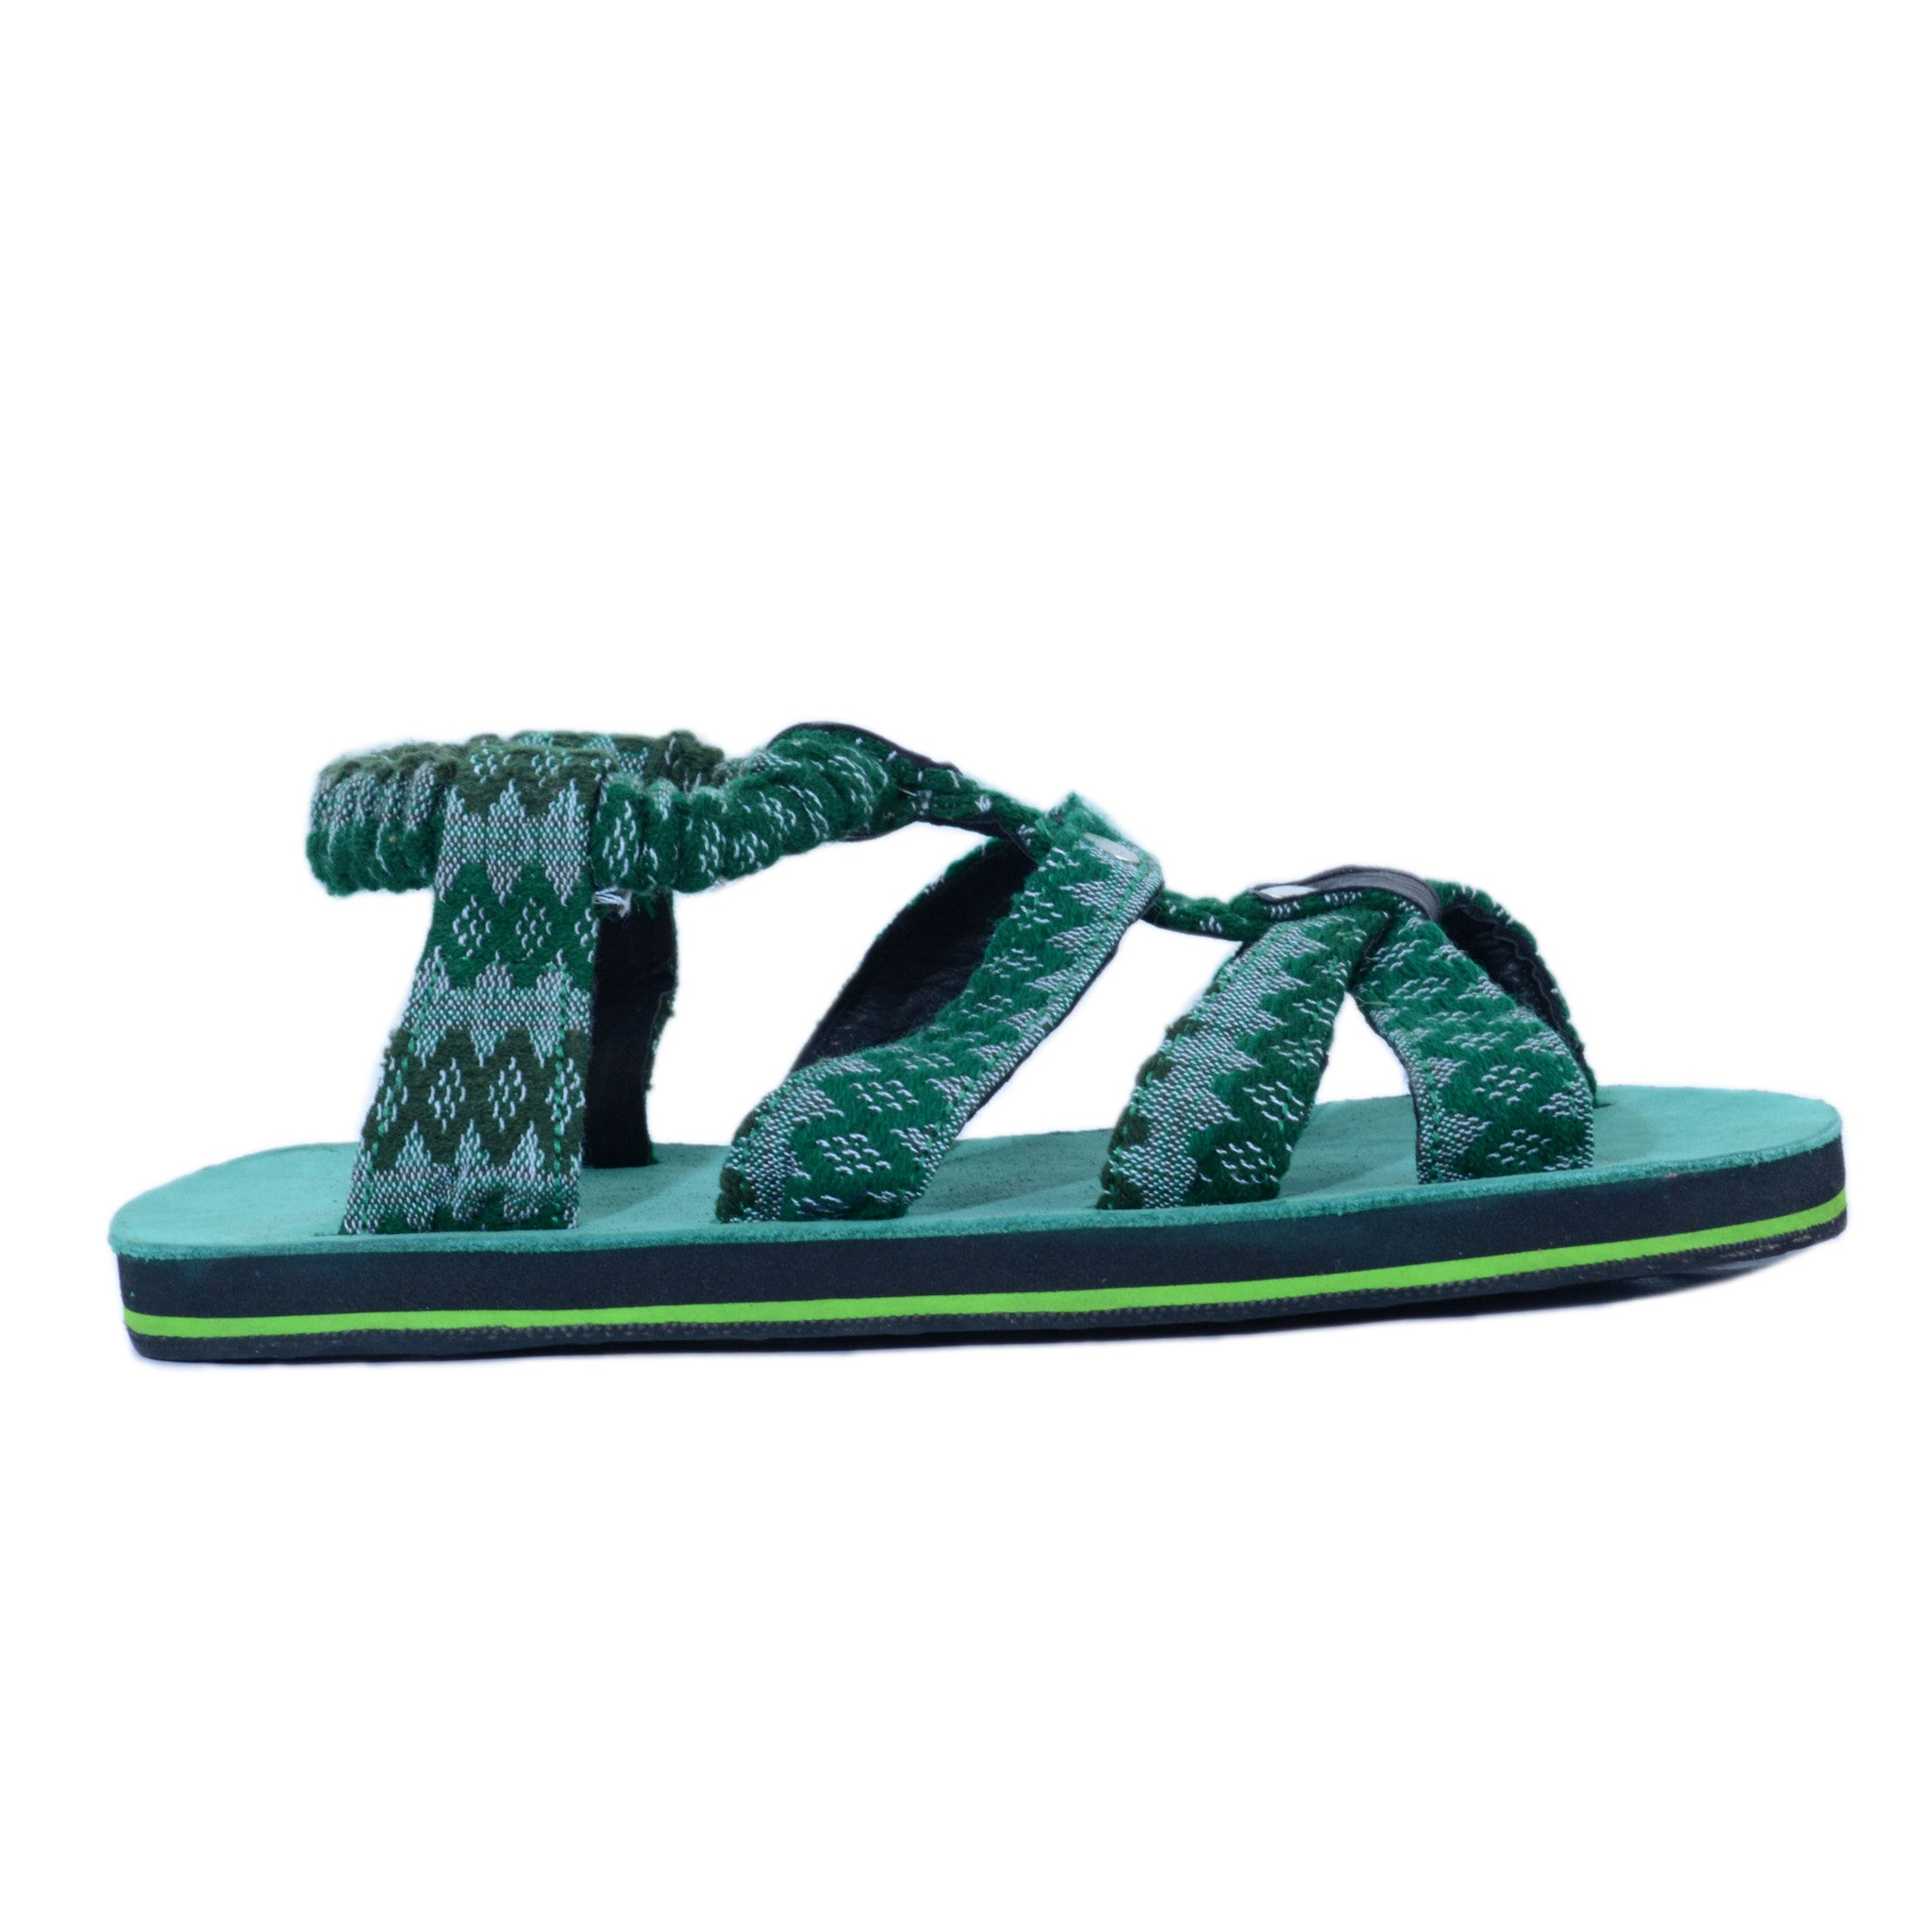 solerebels Green loop FREEDOM wyld Sandals